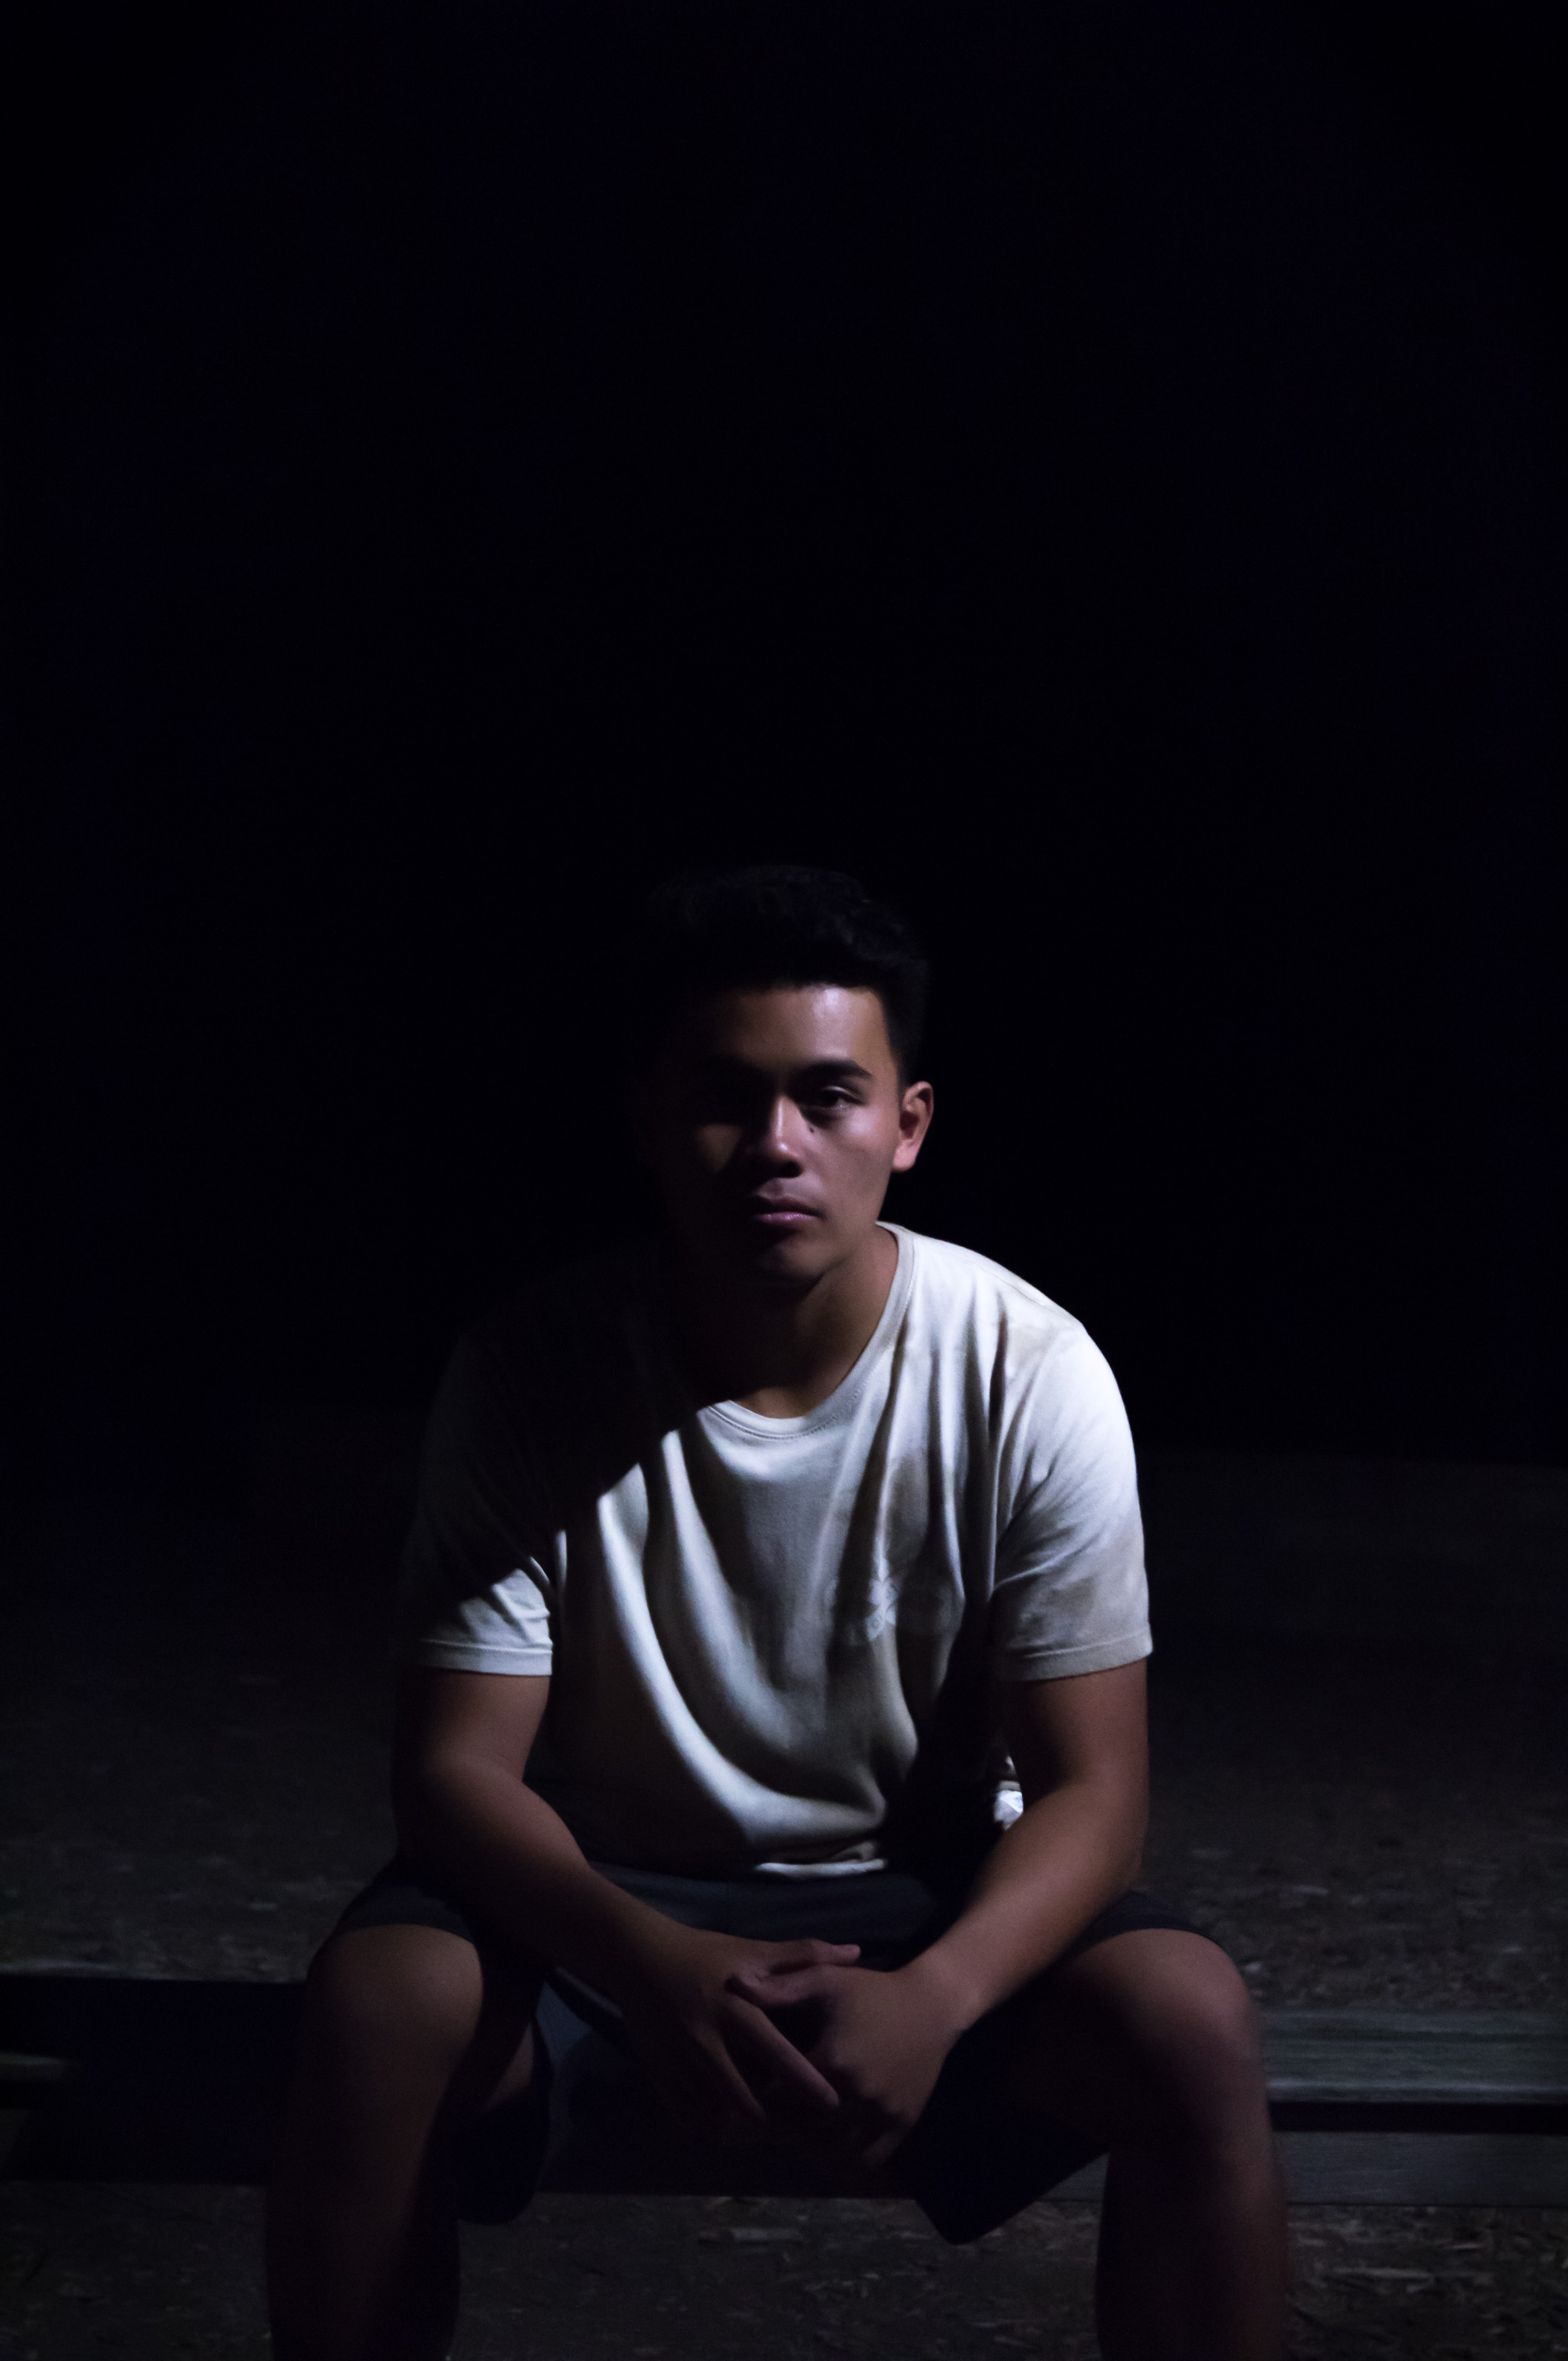 man sitting on ground with black background